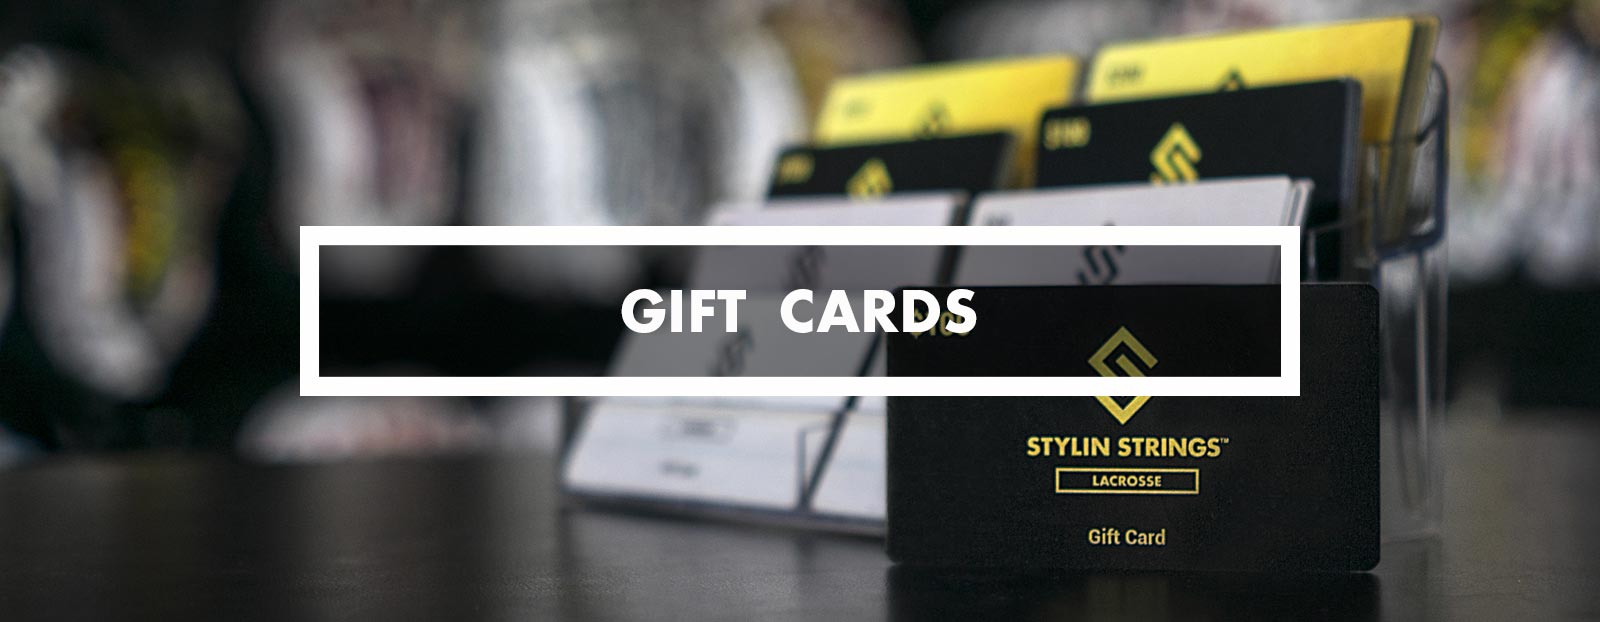 Category - lacrosse gift cards